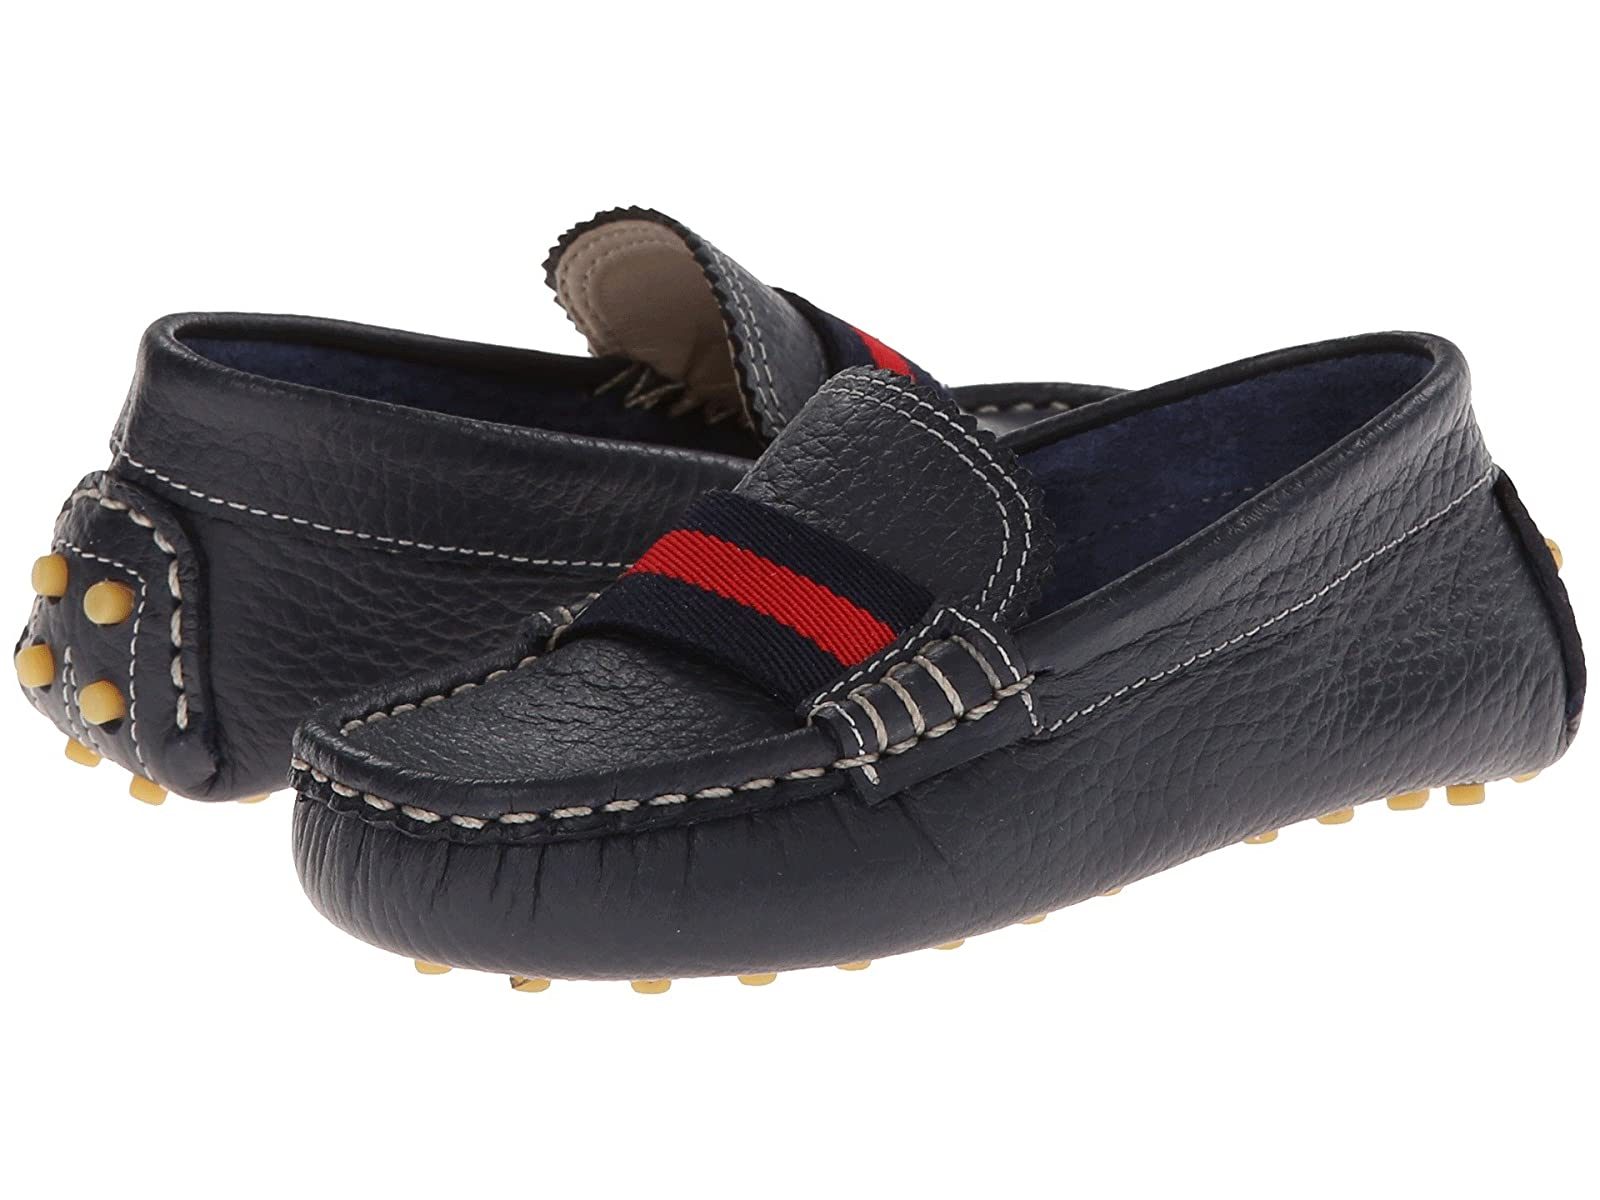 Elephantito Club Loafer (Toddler/Little Kid/Big Kid)Atmospheric grades have affordable shoes